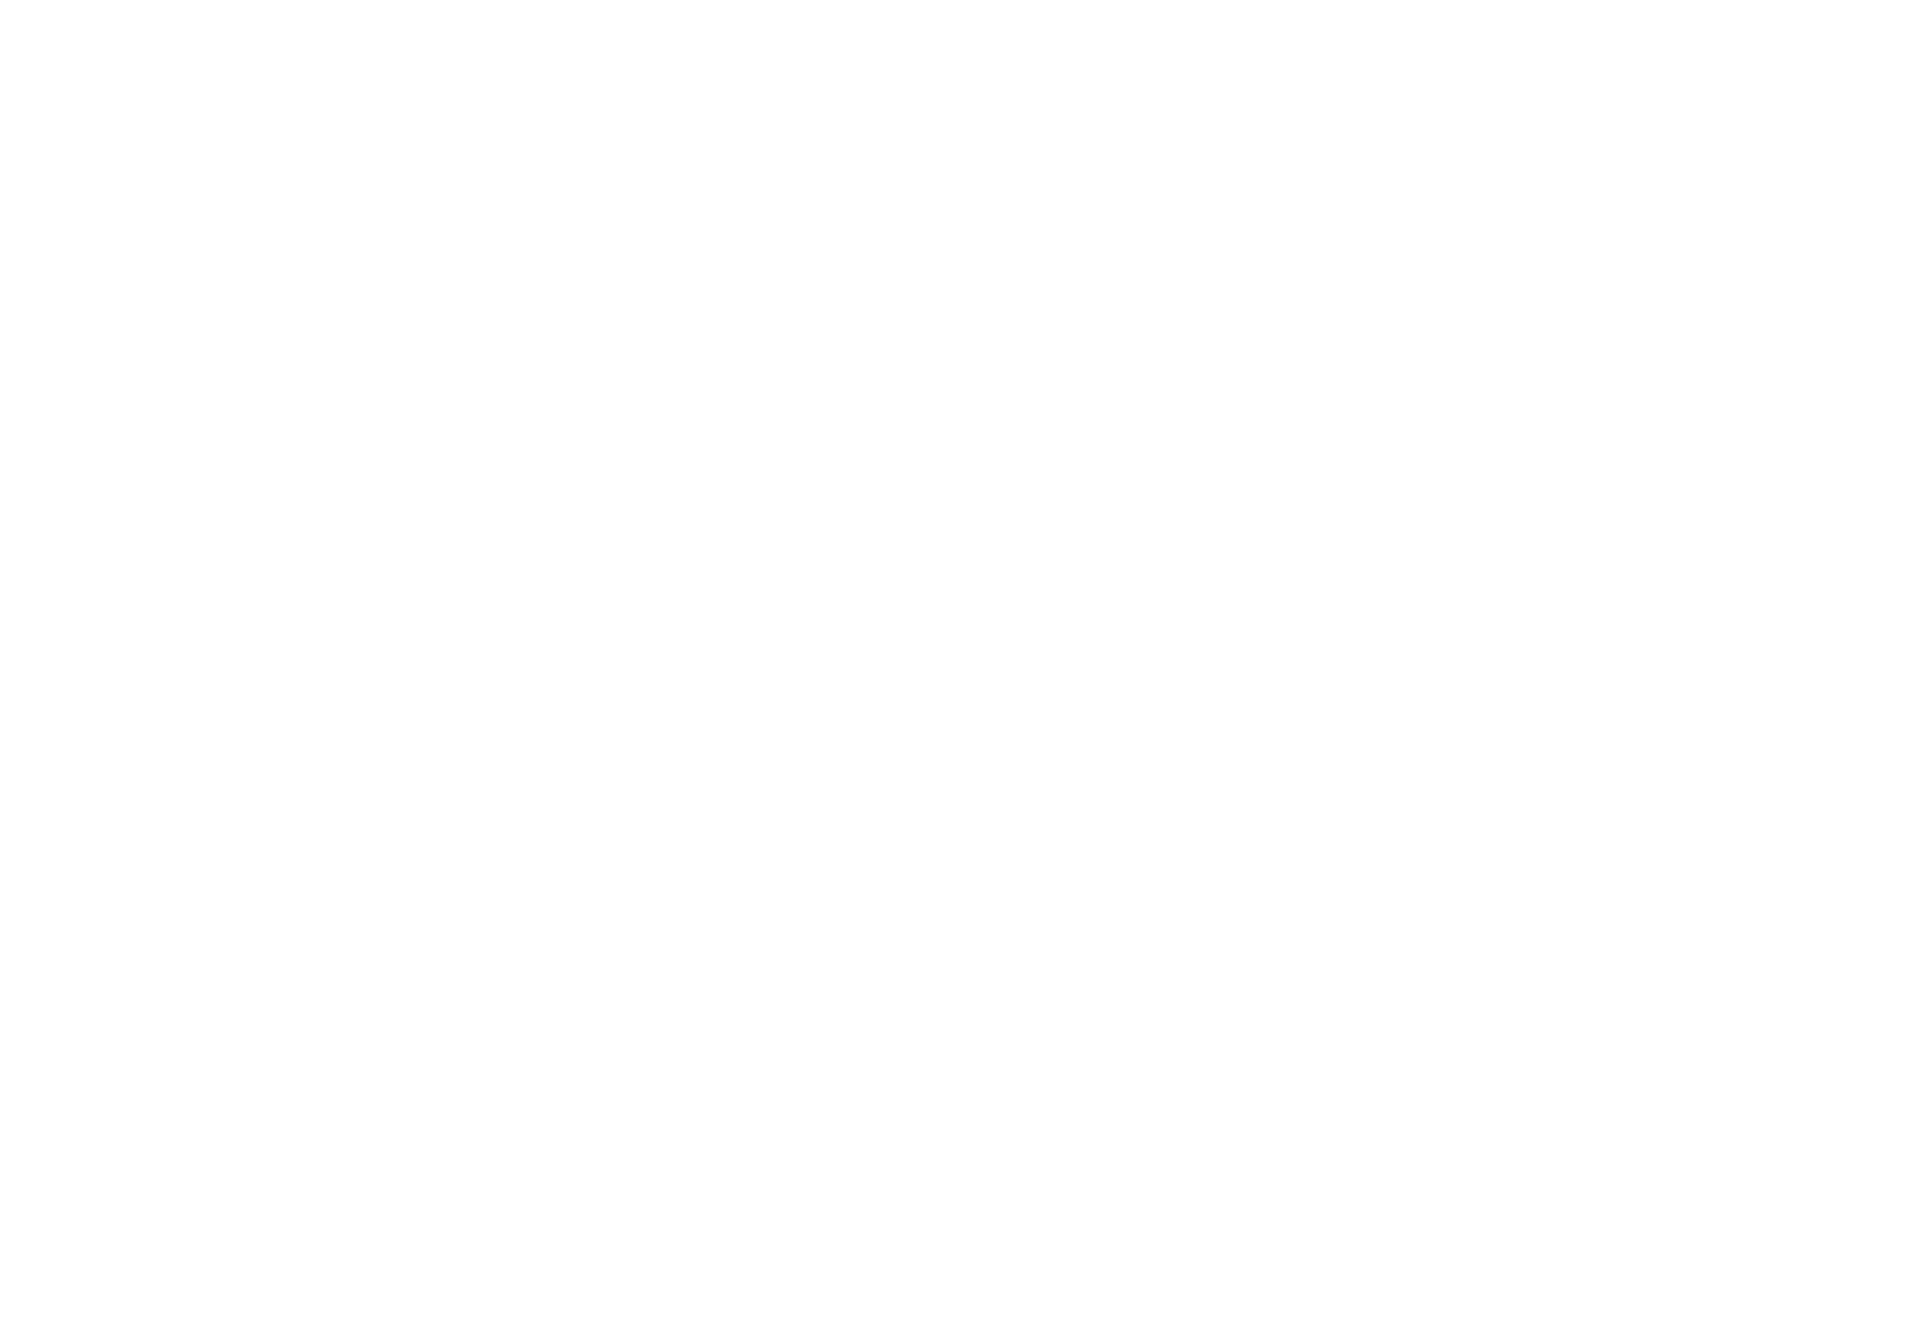 SFE News Bites: Click the preview to read full article.